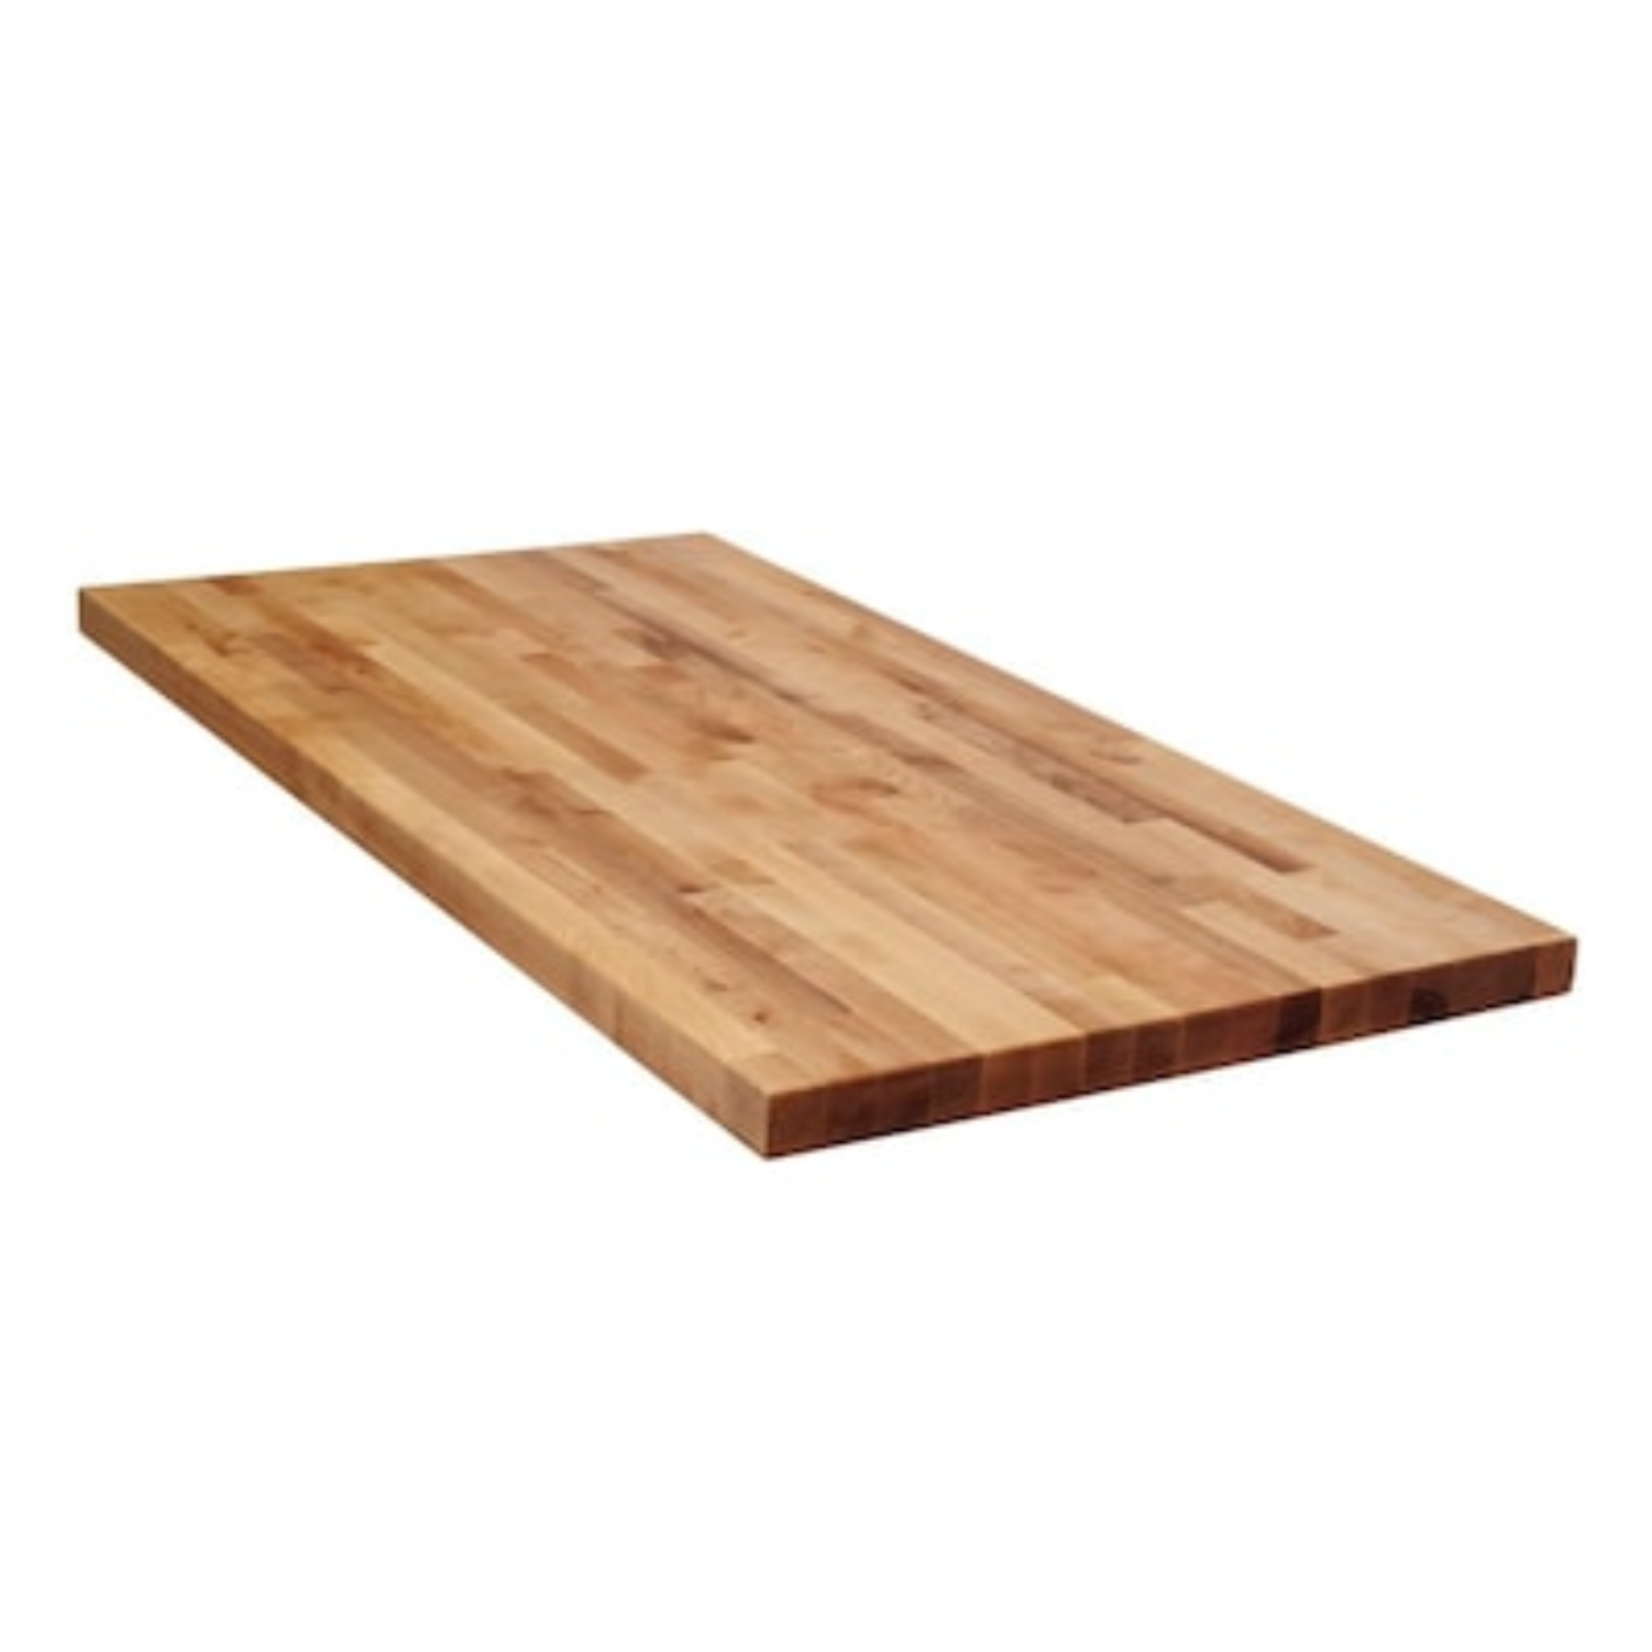 10122 The Baltic 8-ft Unfinished Birch Wood Butcher Block Countertop